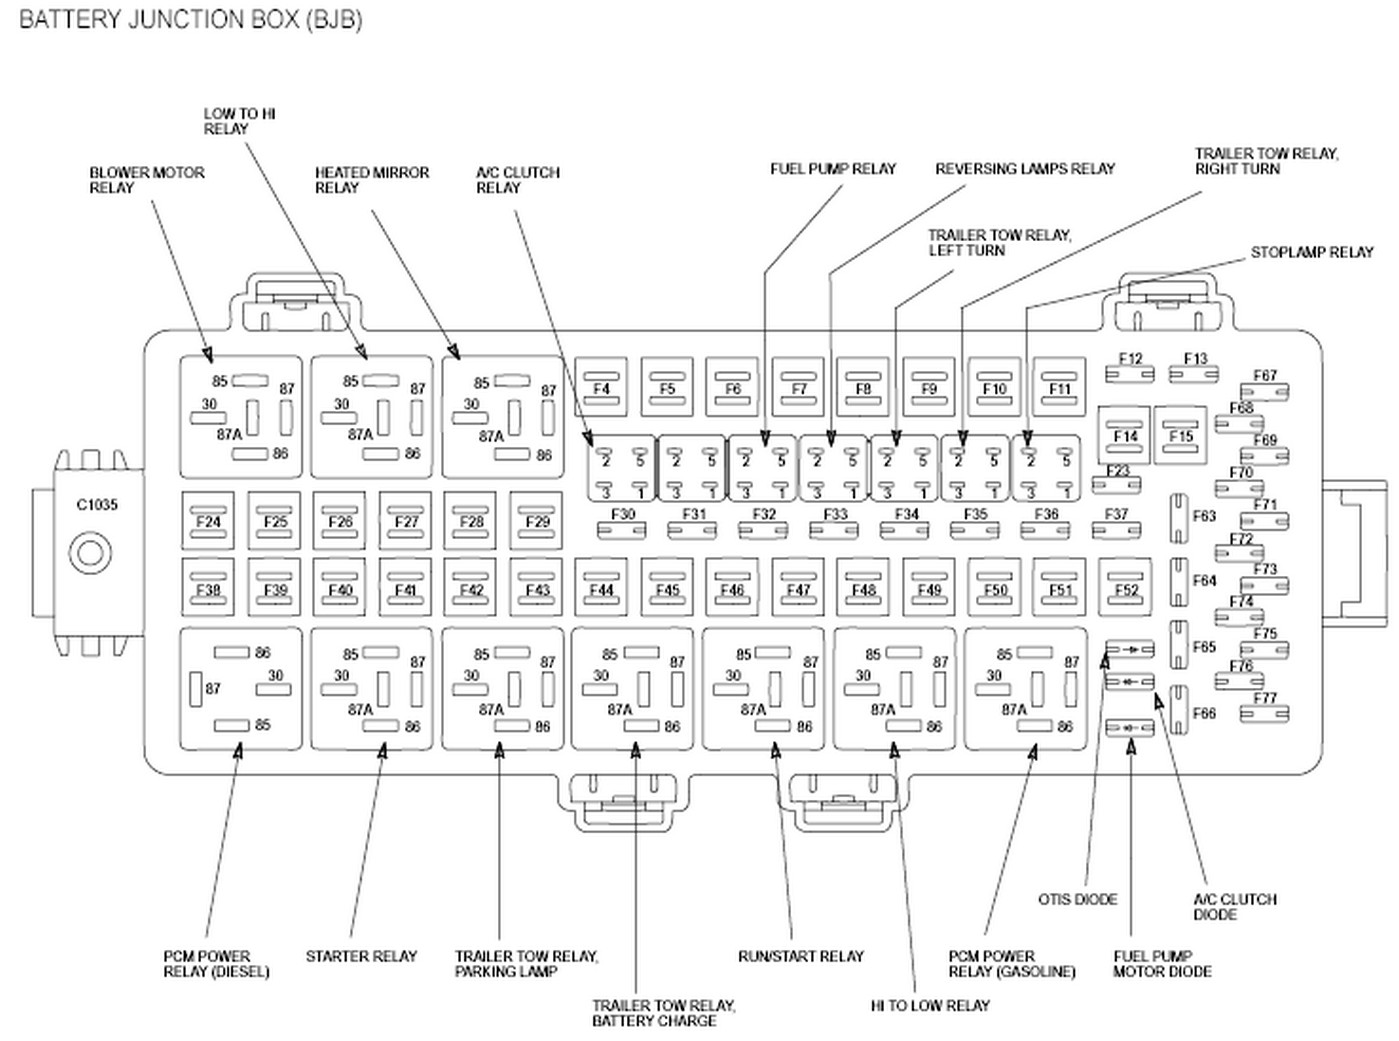 2011 ford f250 fuse box diagram Zoinyhu 2011 ford f250 fuse box diagram image details 2011 ford f350 fuse box diagram at soozxer.org